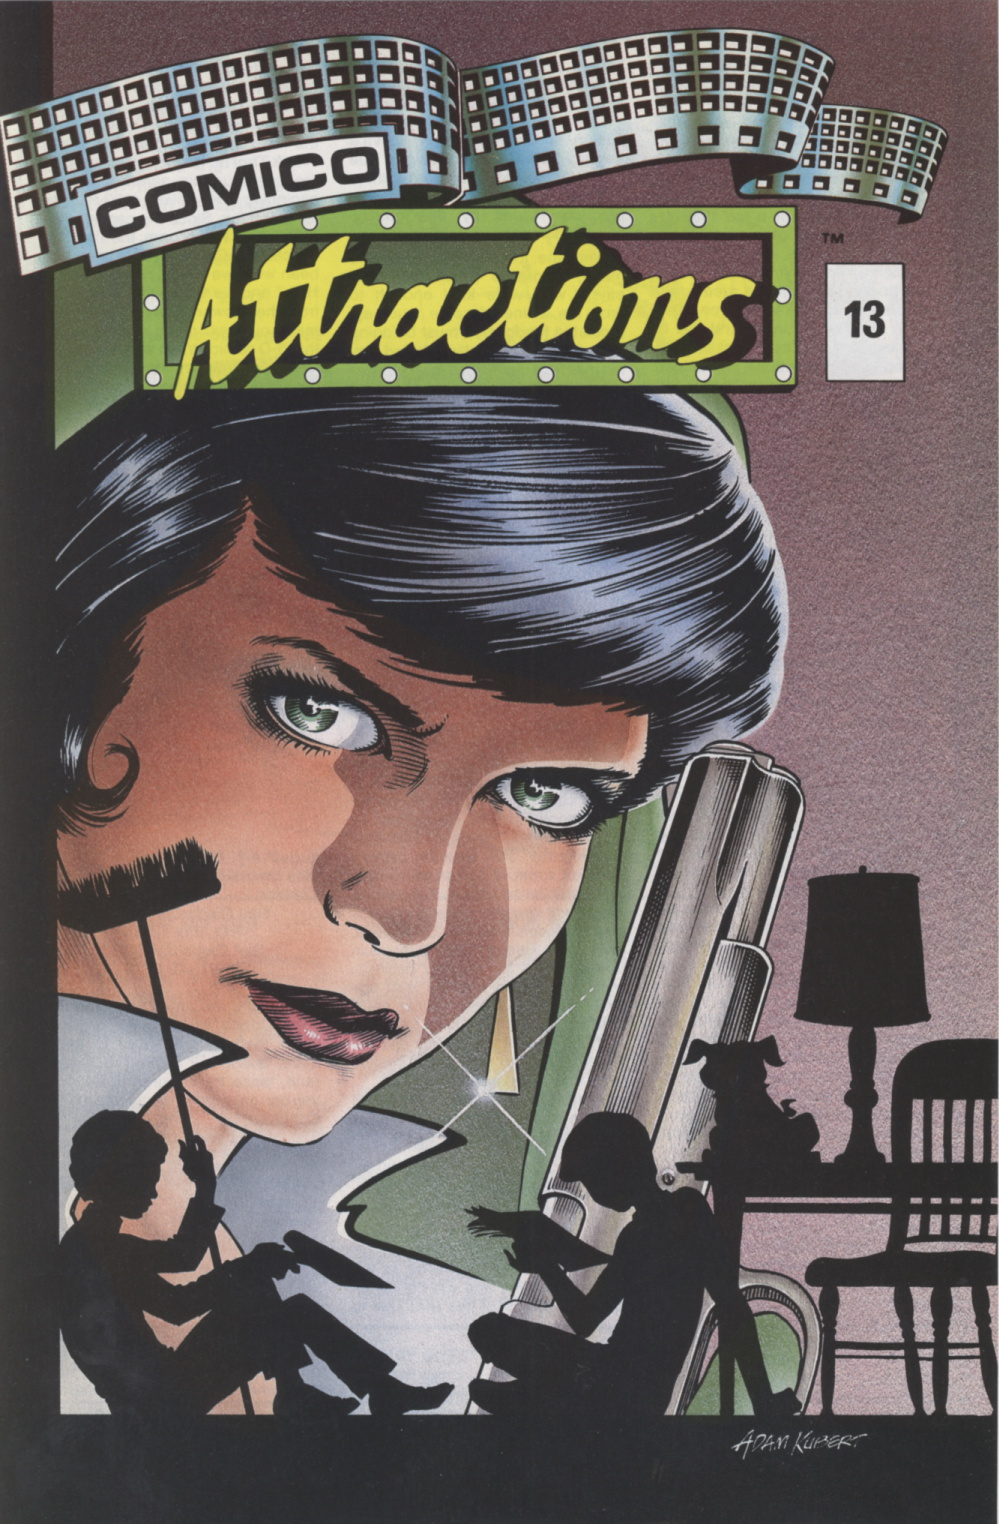 Time Capsule: Comico Attractions 13, 1988